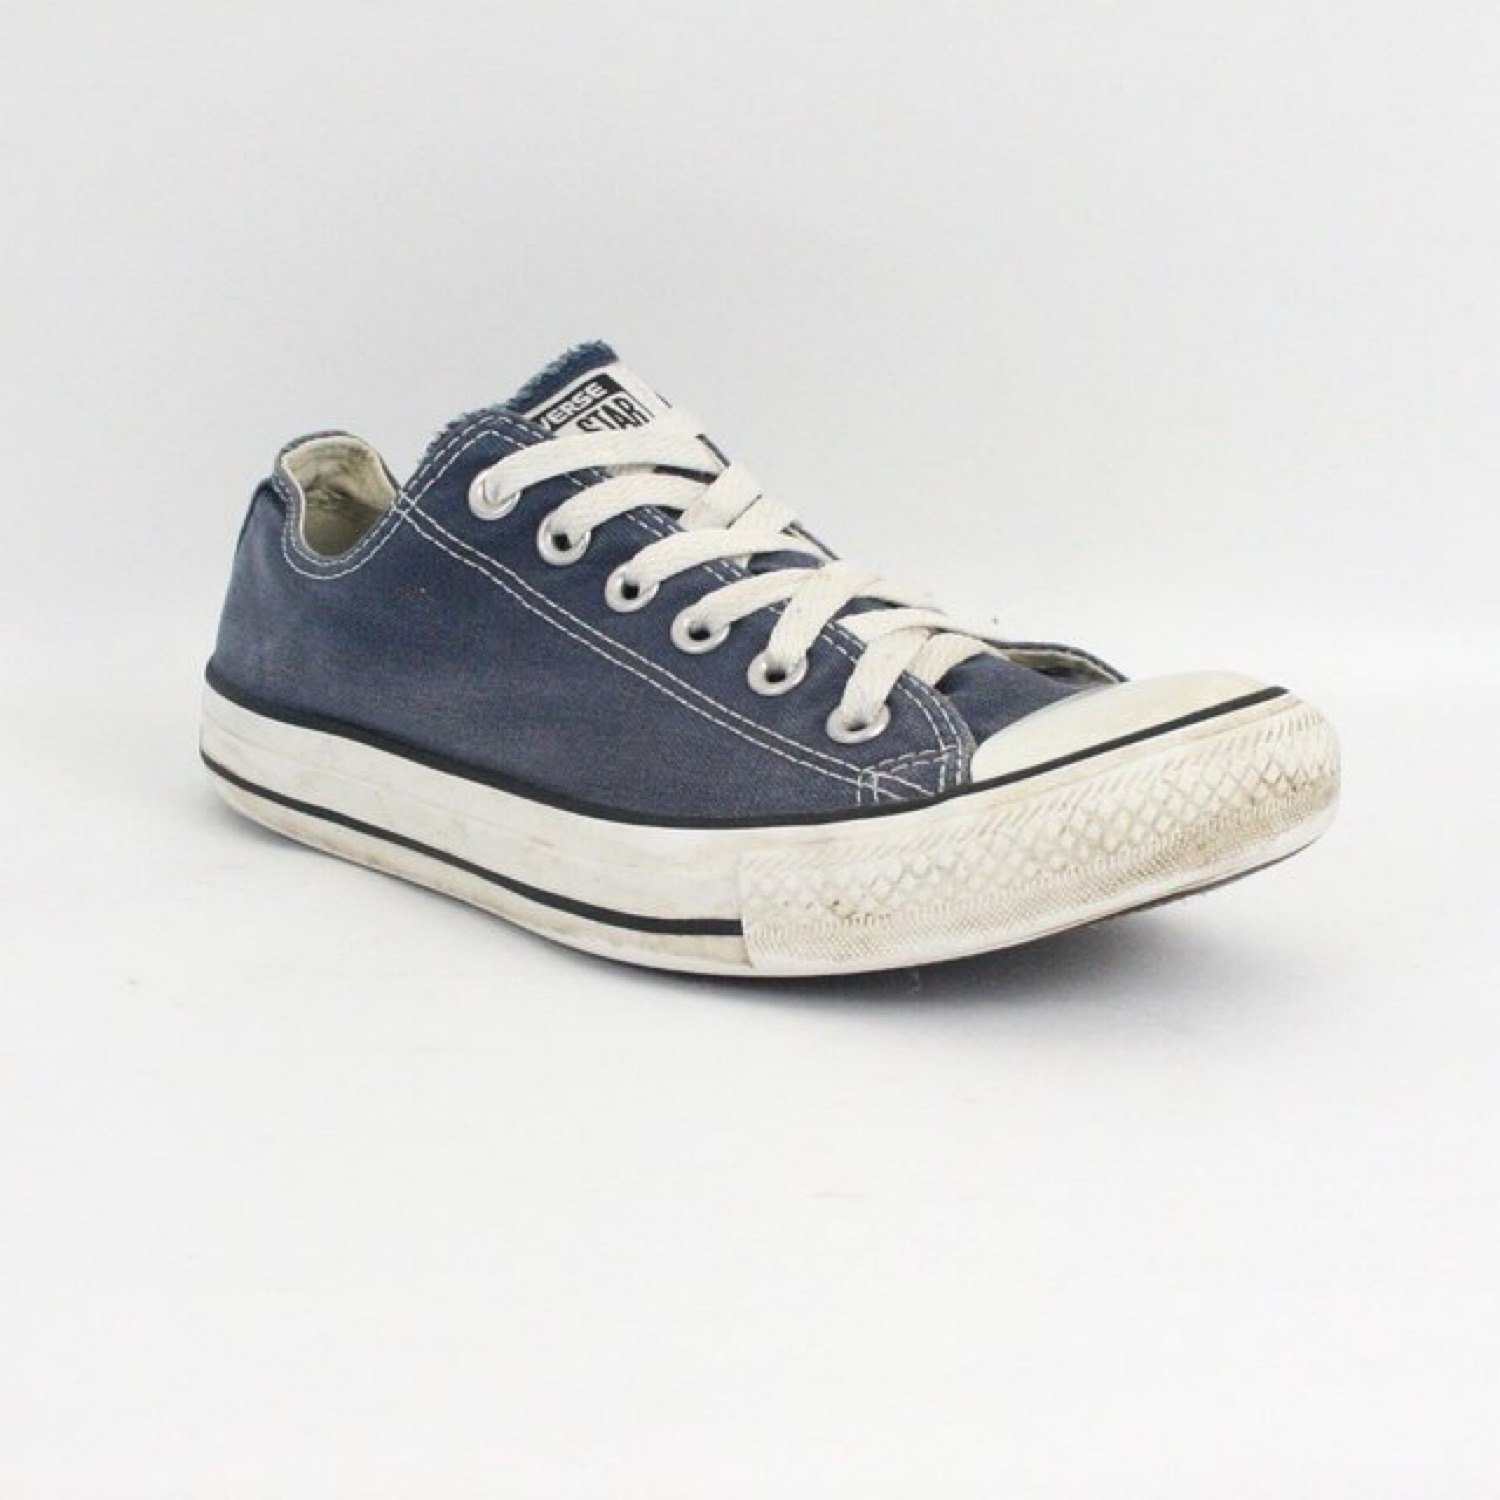 Vintage Converse All Star Low